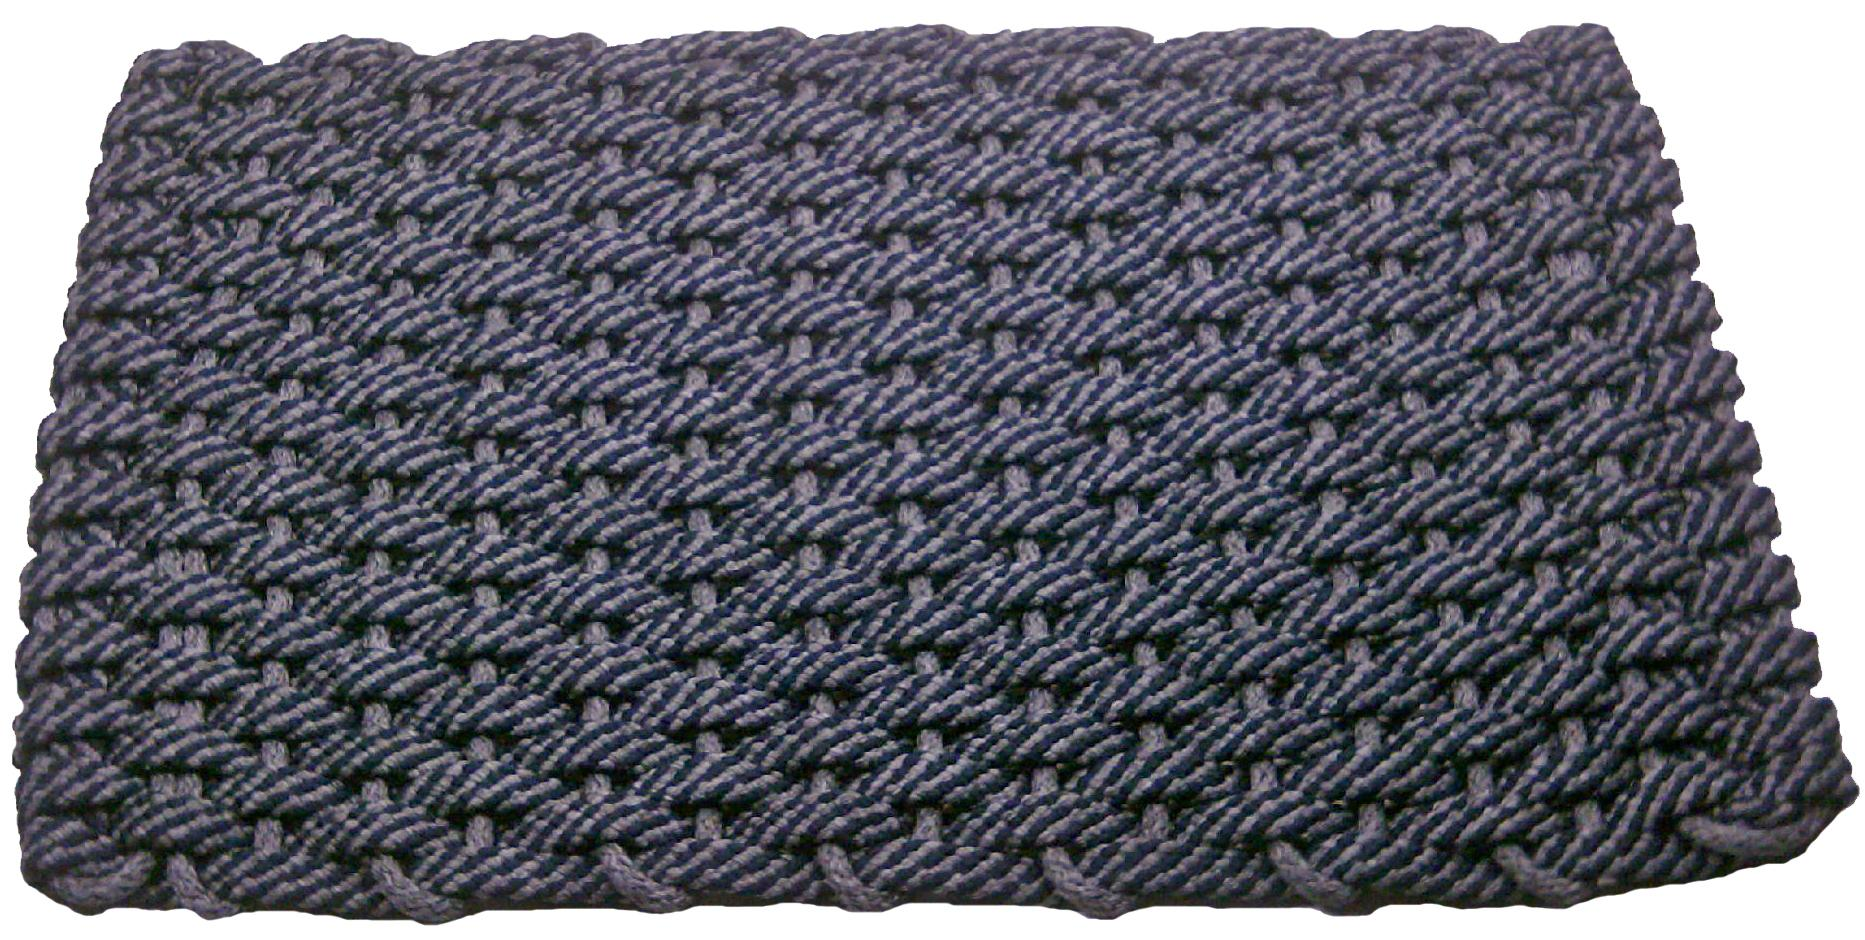 Rockport rope doormats 2438303 indoor and for Door mats amazon